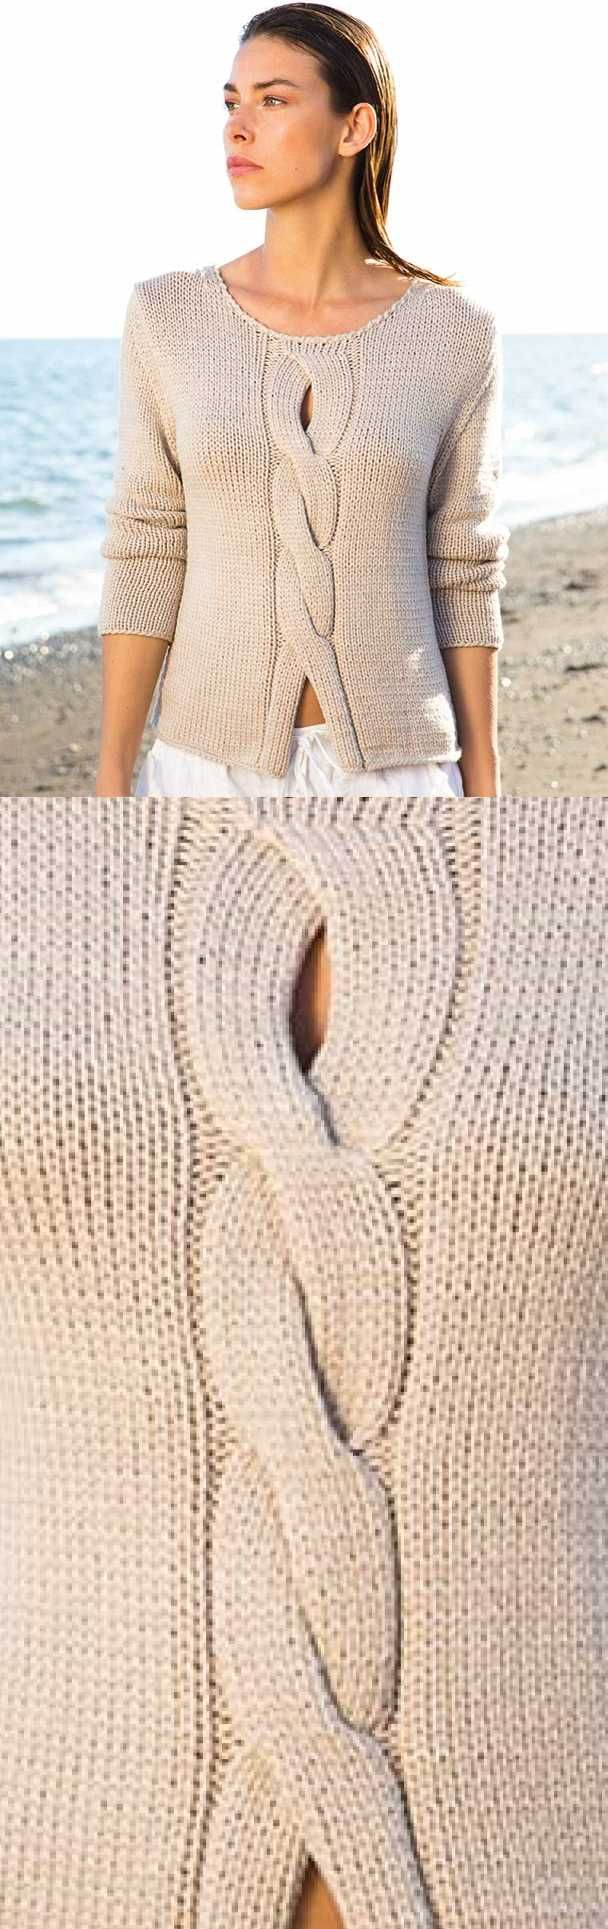 Ladies Top Free Knitting Pattern with a Center Cable | Ladies tops ...